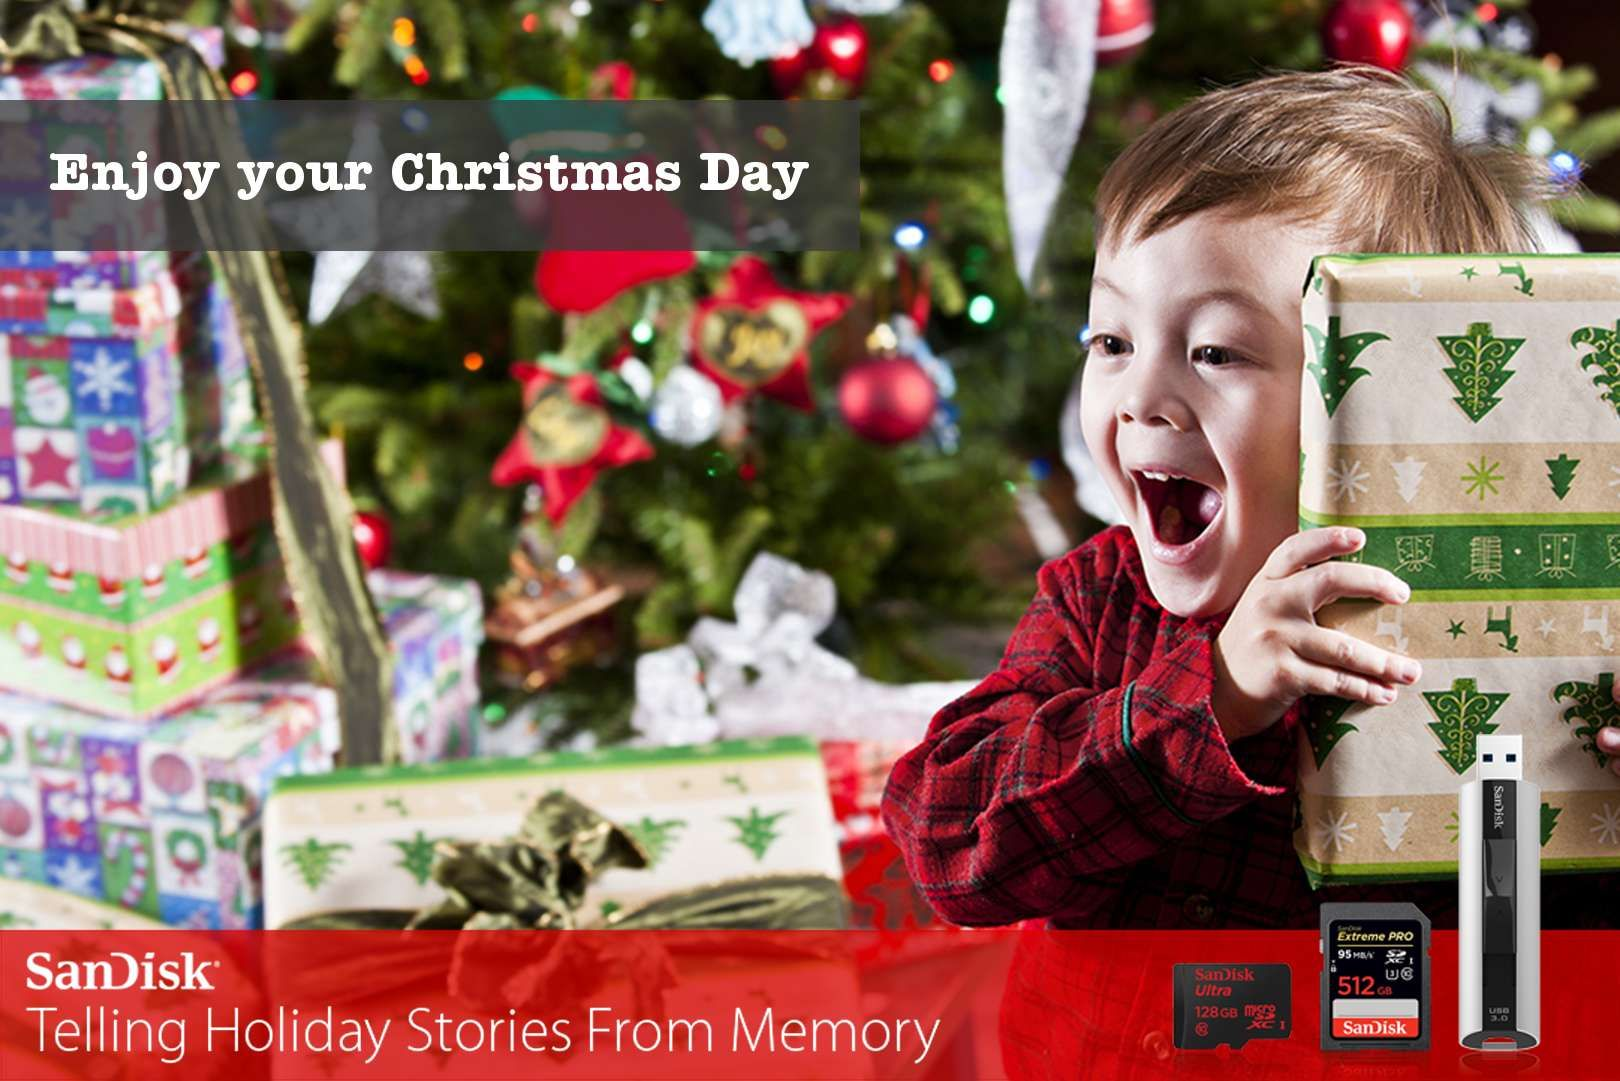 Check out my personal holiday card I just created! And, I'm entered into SanDisk's Holiday Stories Sweeps for a chance to win $1,000.